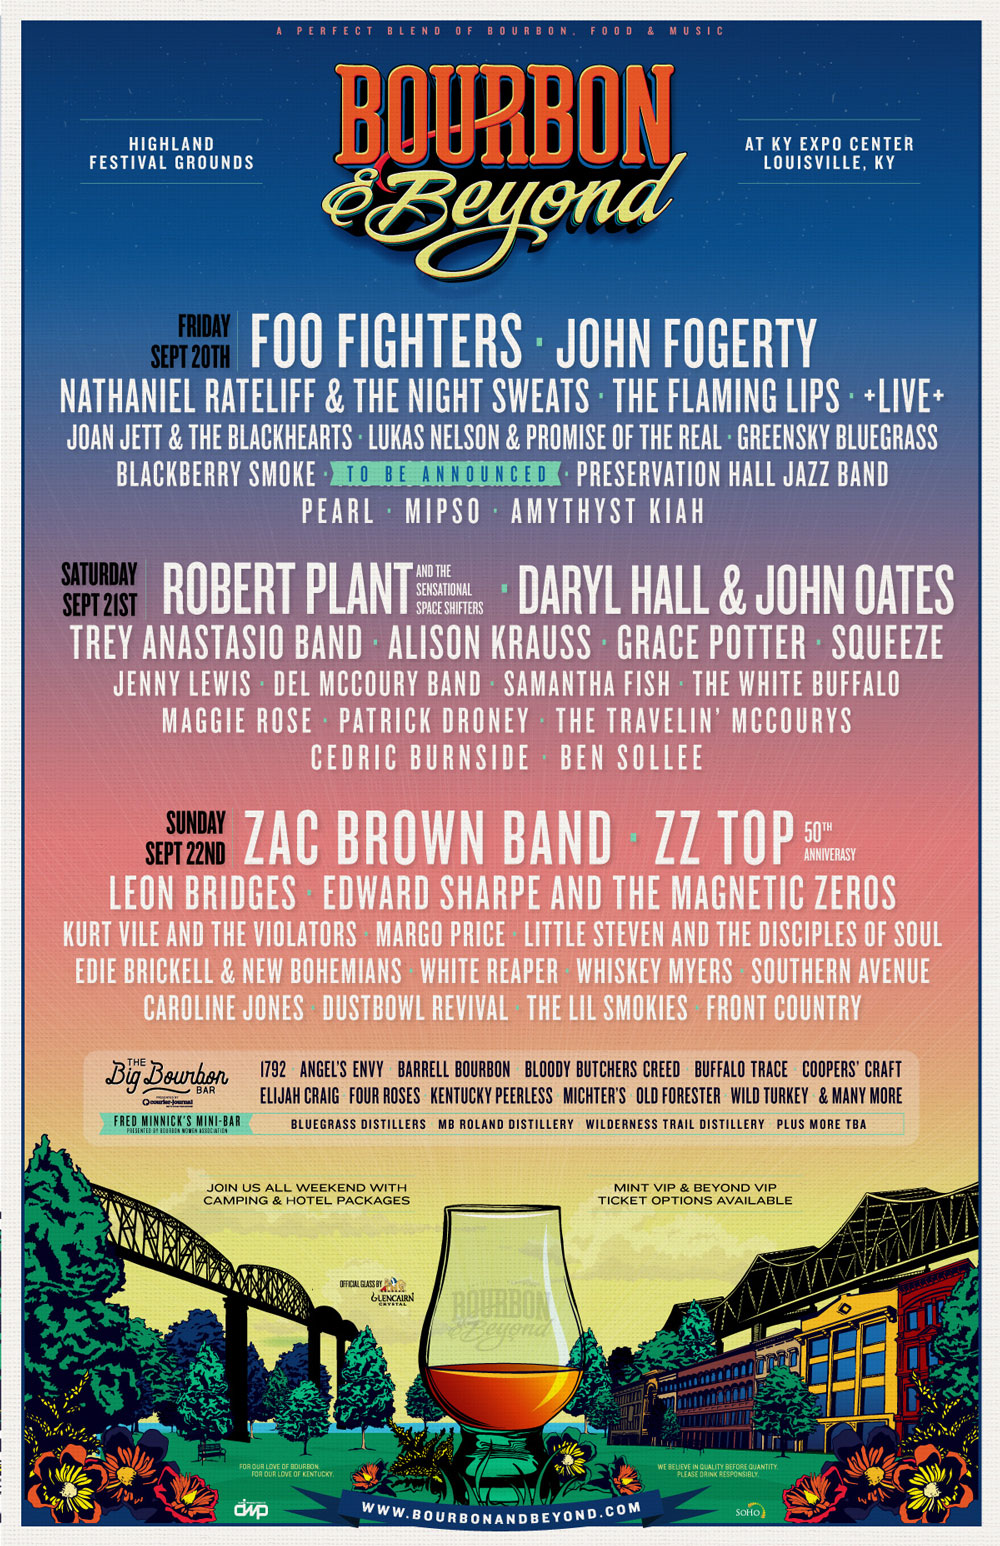 Upcoming Classic Rock Festivals | The Best Classic Rock News